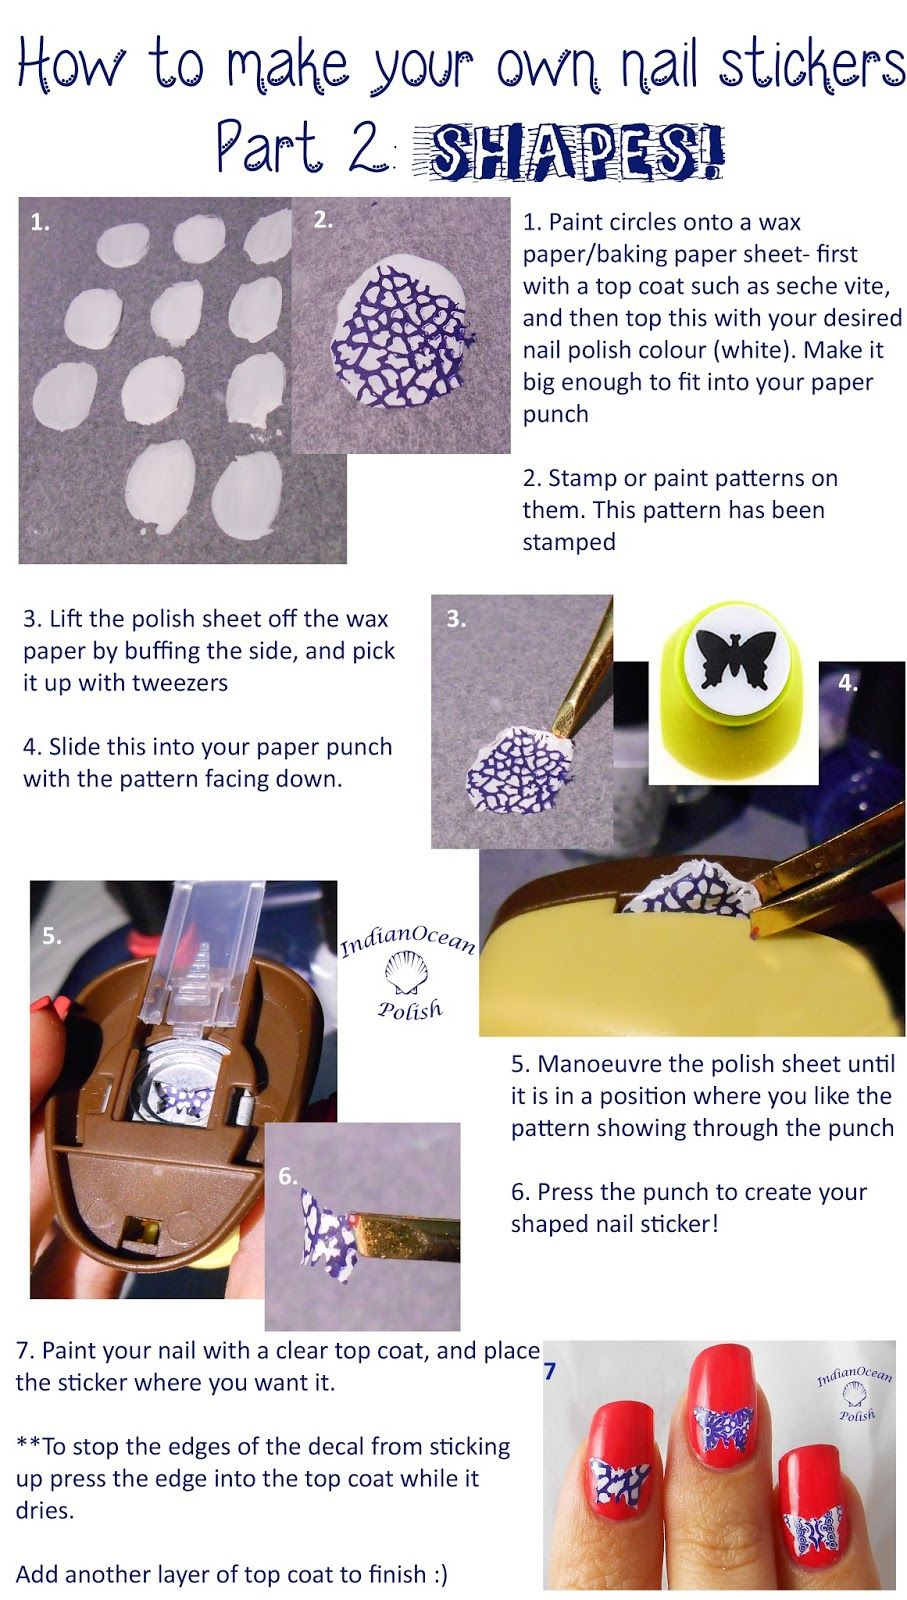 Indian Ocean Polish How To Make Your Own Nail Decals Part - Make your own decal paper